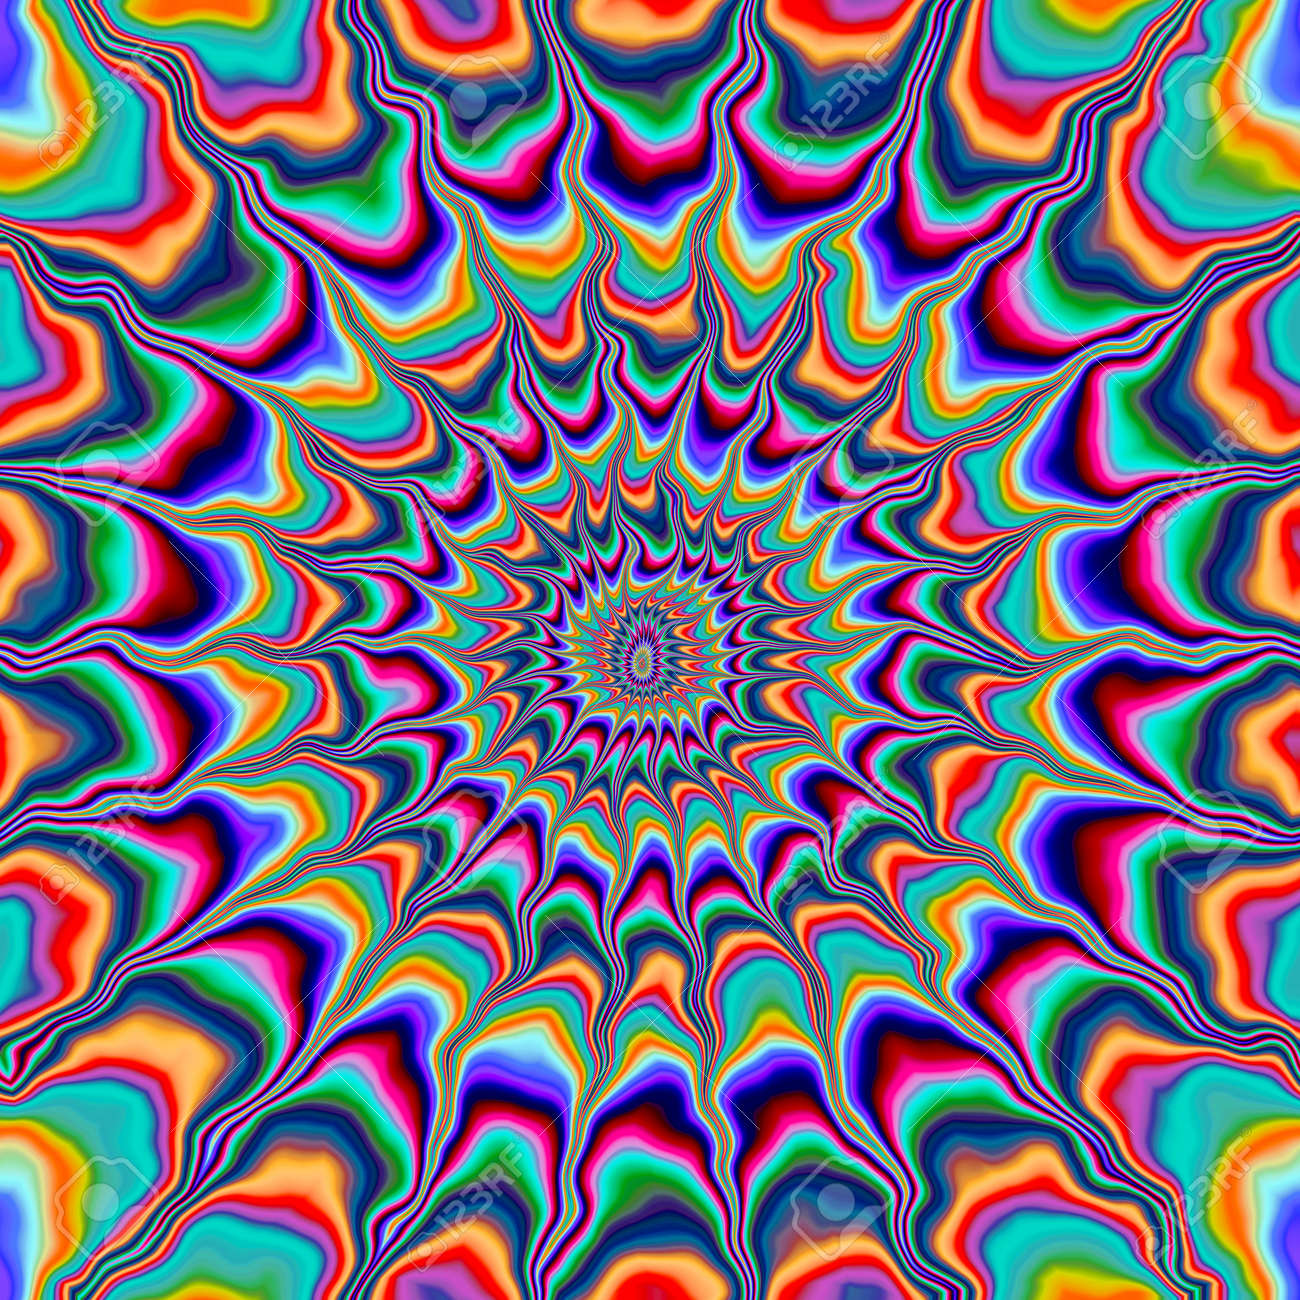 abstract insane psychedelic shapes as crazy wallpaper stock photo